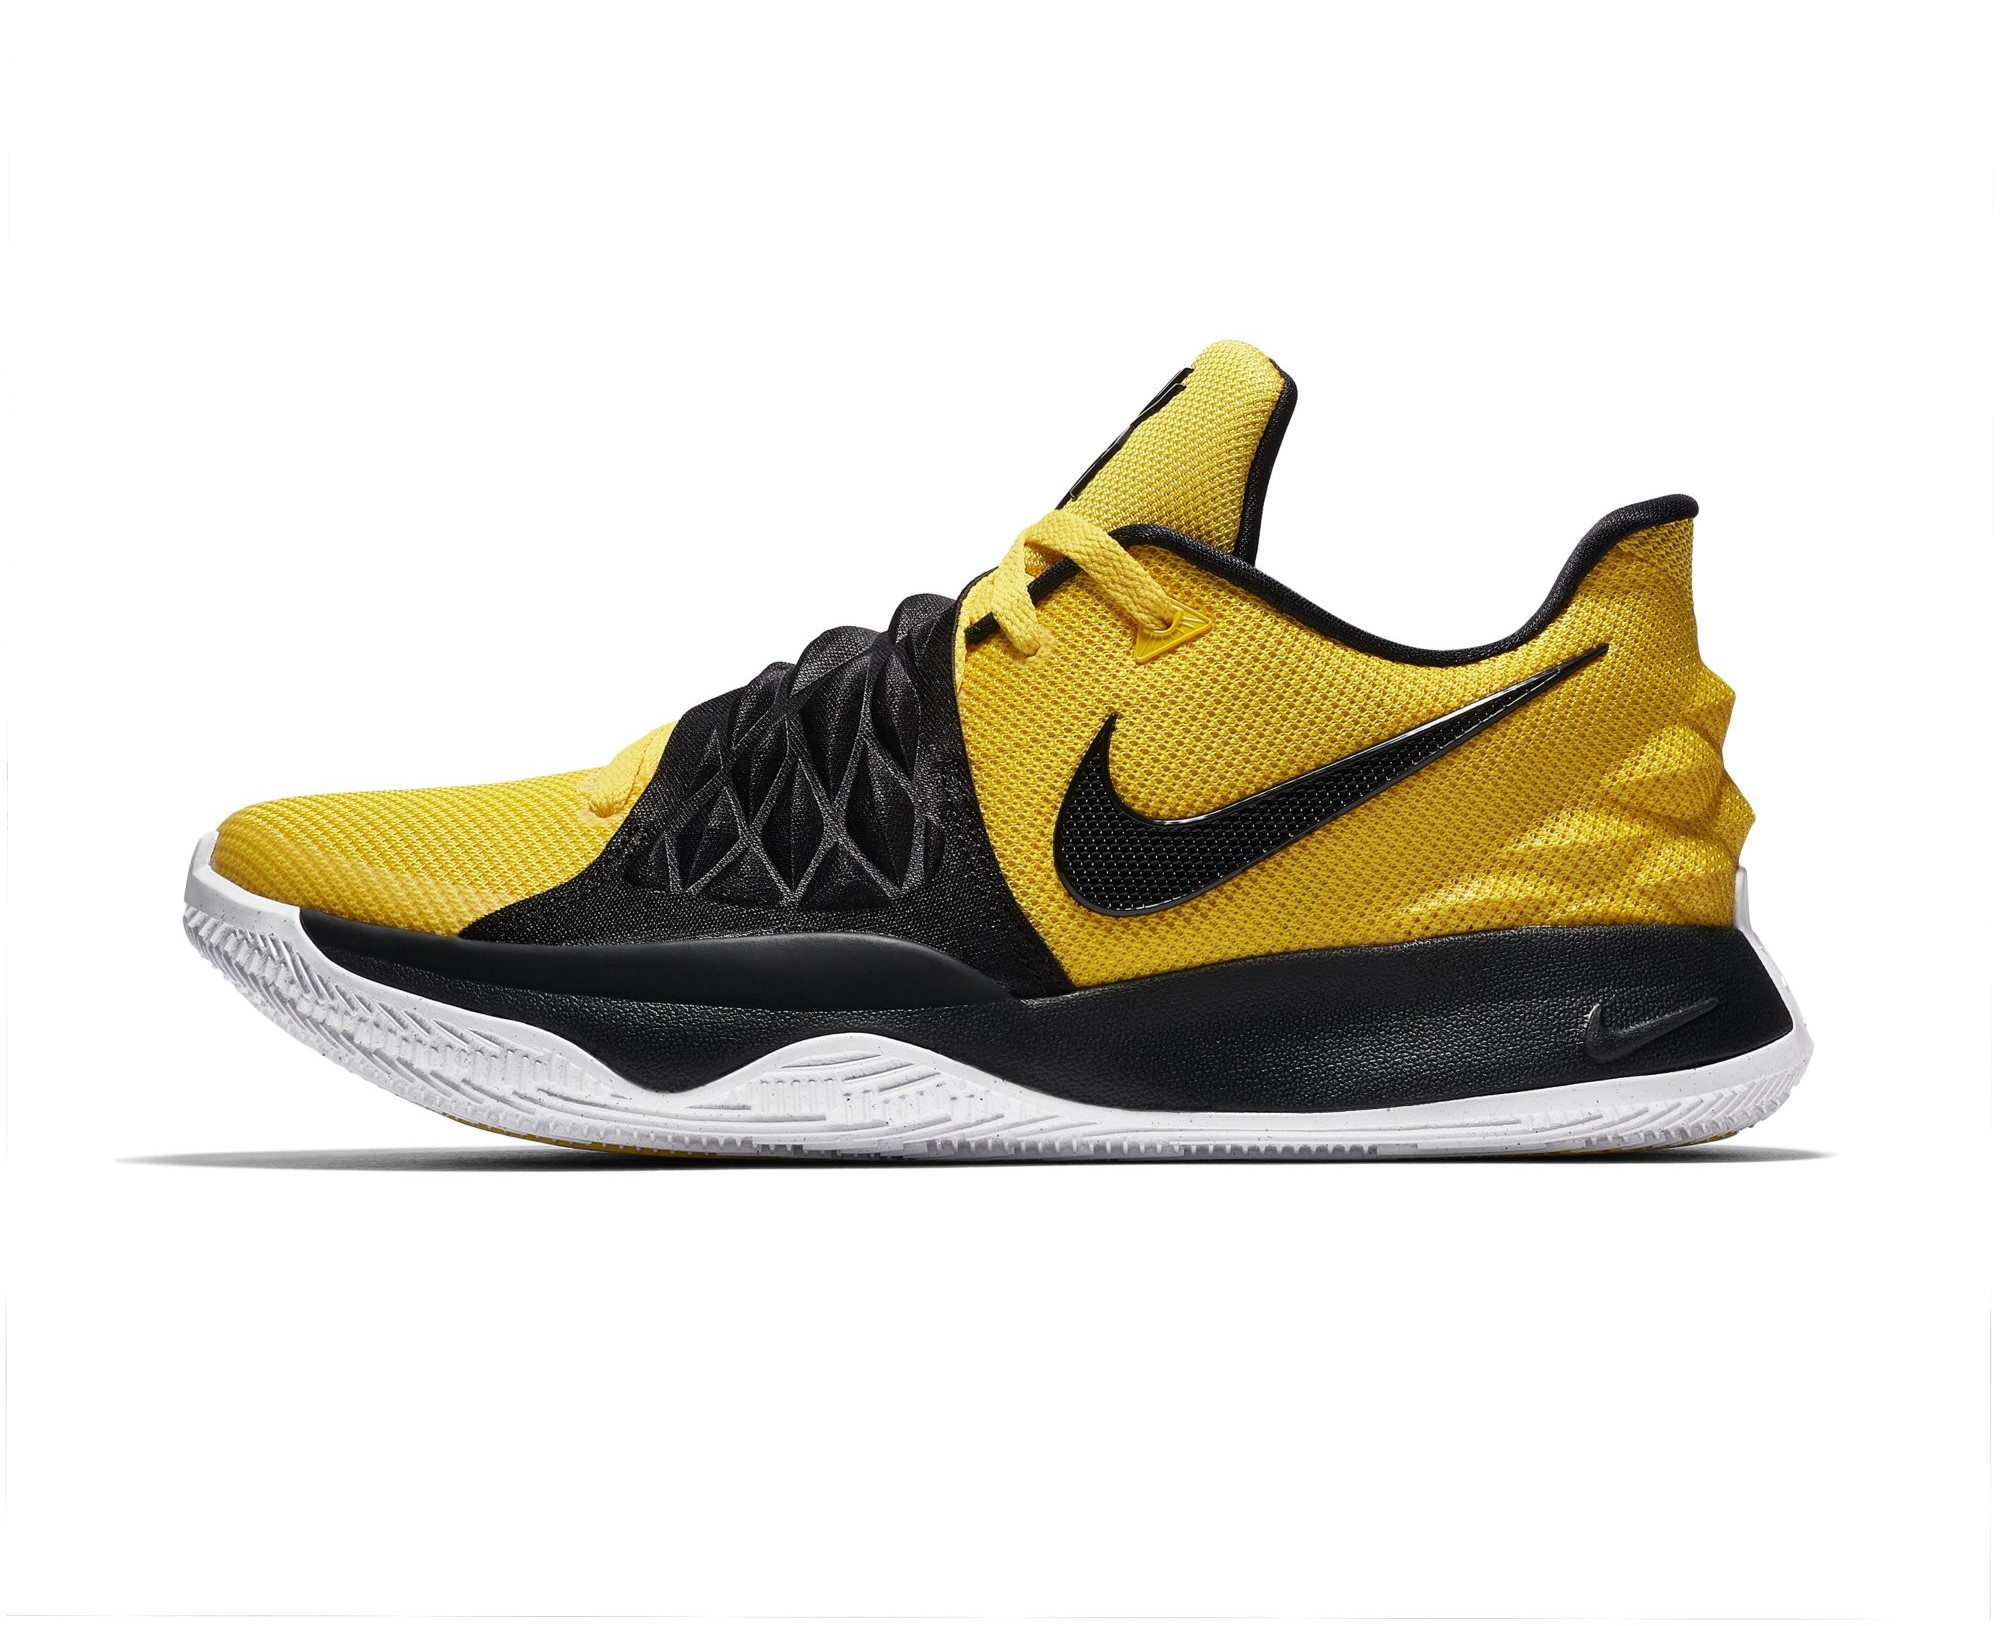 482eb7a3bd7d Expect the Nike Kyrie Low  Amarillo  to Release Next Month - WearTesters